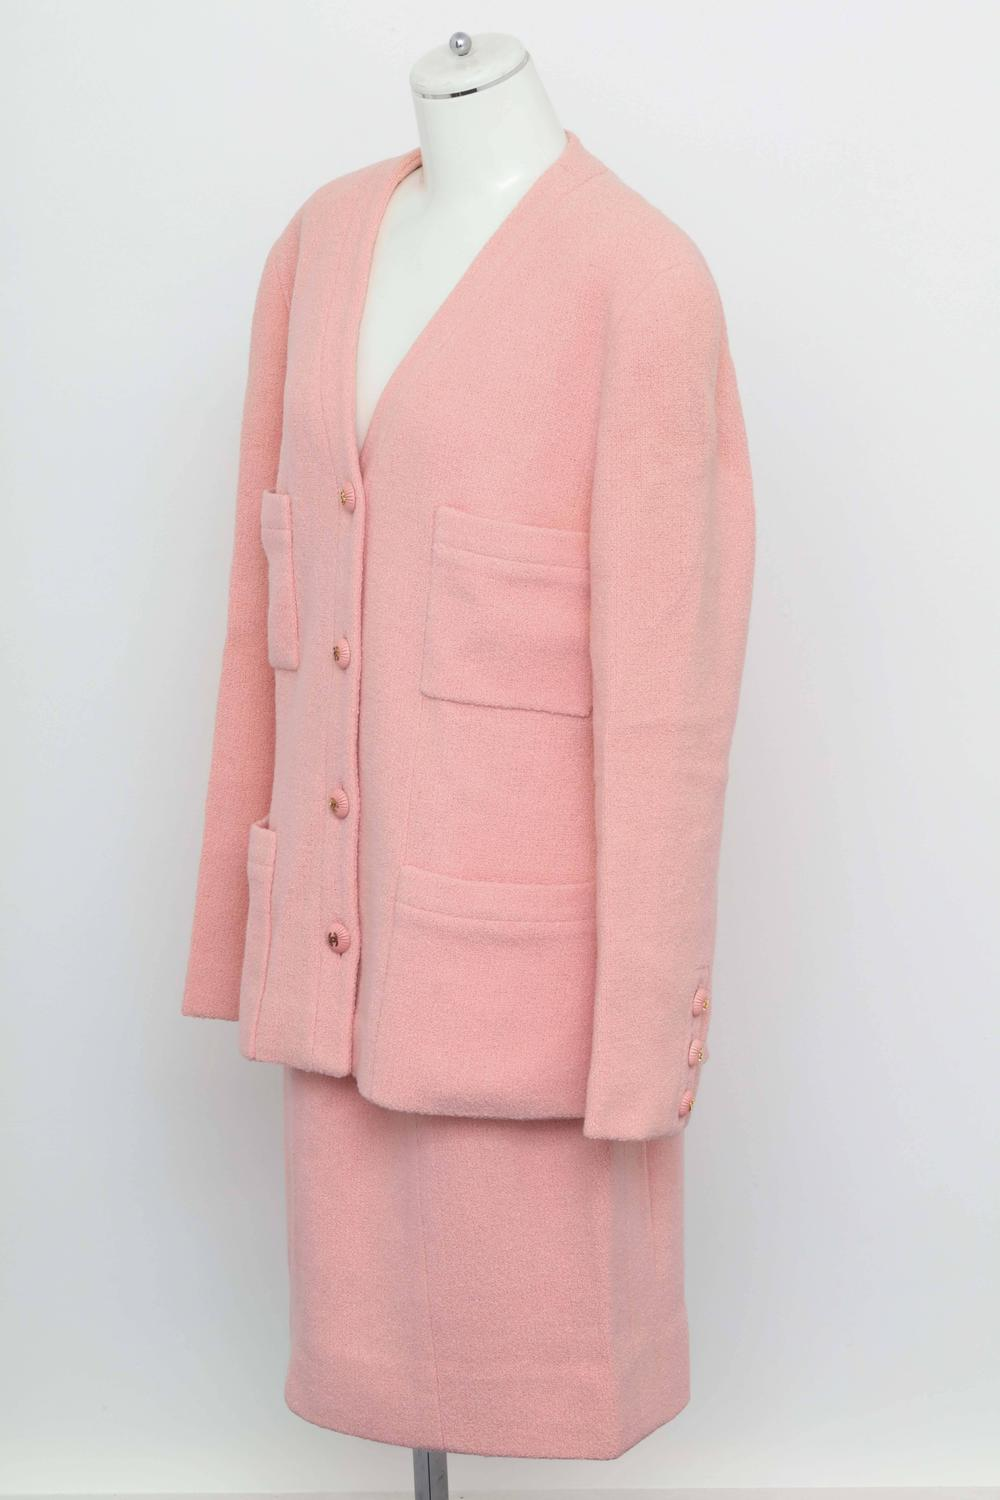 Buying Pink Suits Online A Large Pink Mens Suits Selection. Finding great pink suits for sale isn't always simple. MensItaly, however, is a trusted online retailer that makes it substantially easier to do so.